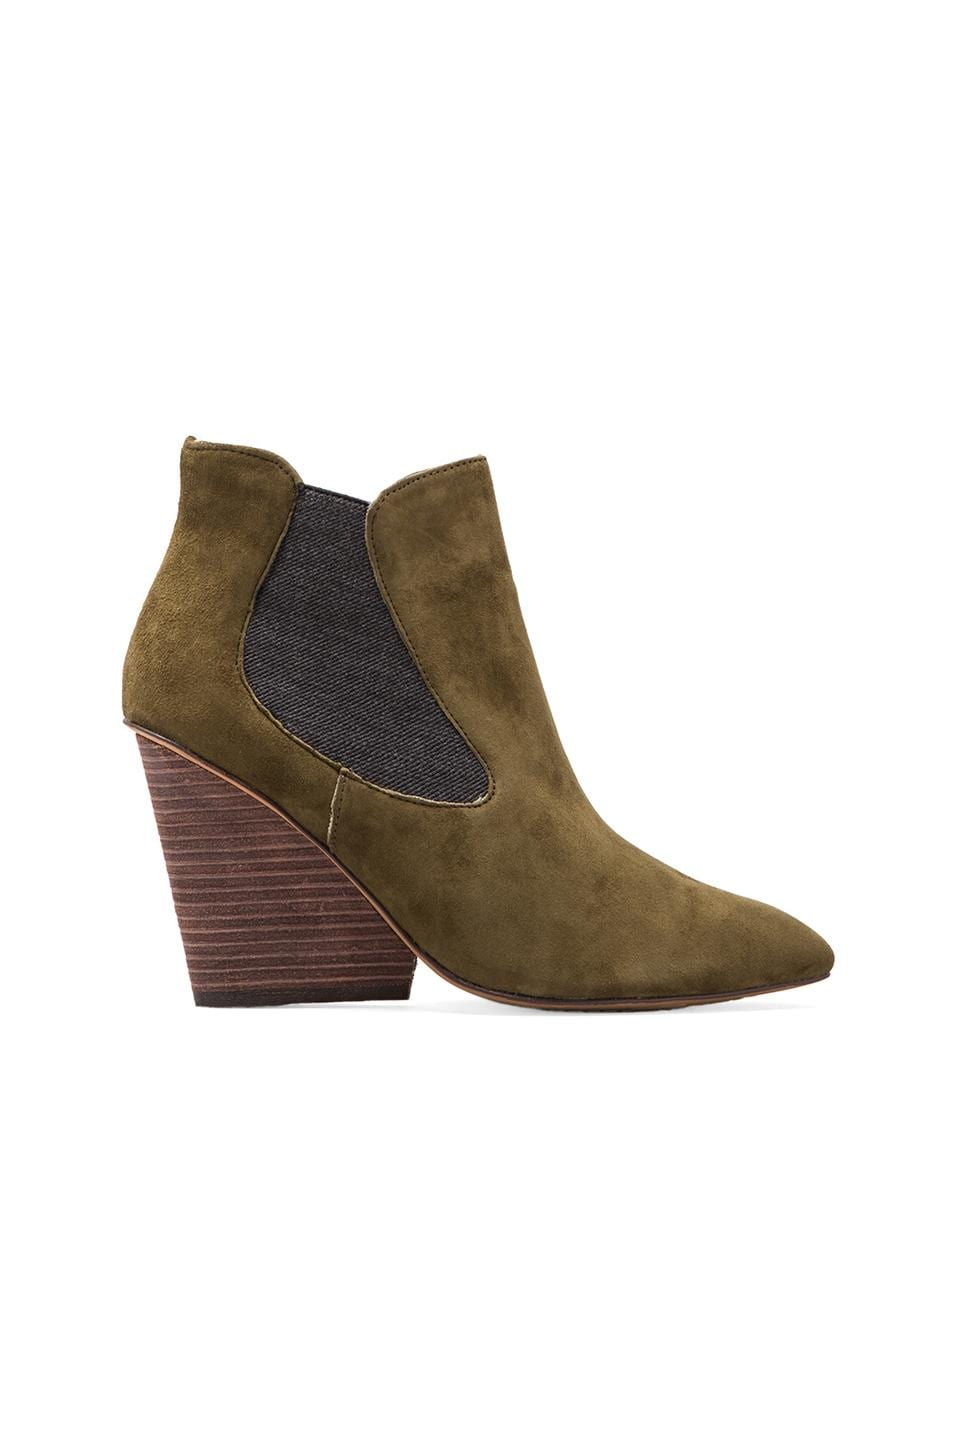 Steven Maliik Bootie is Green Suede